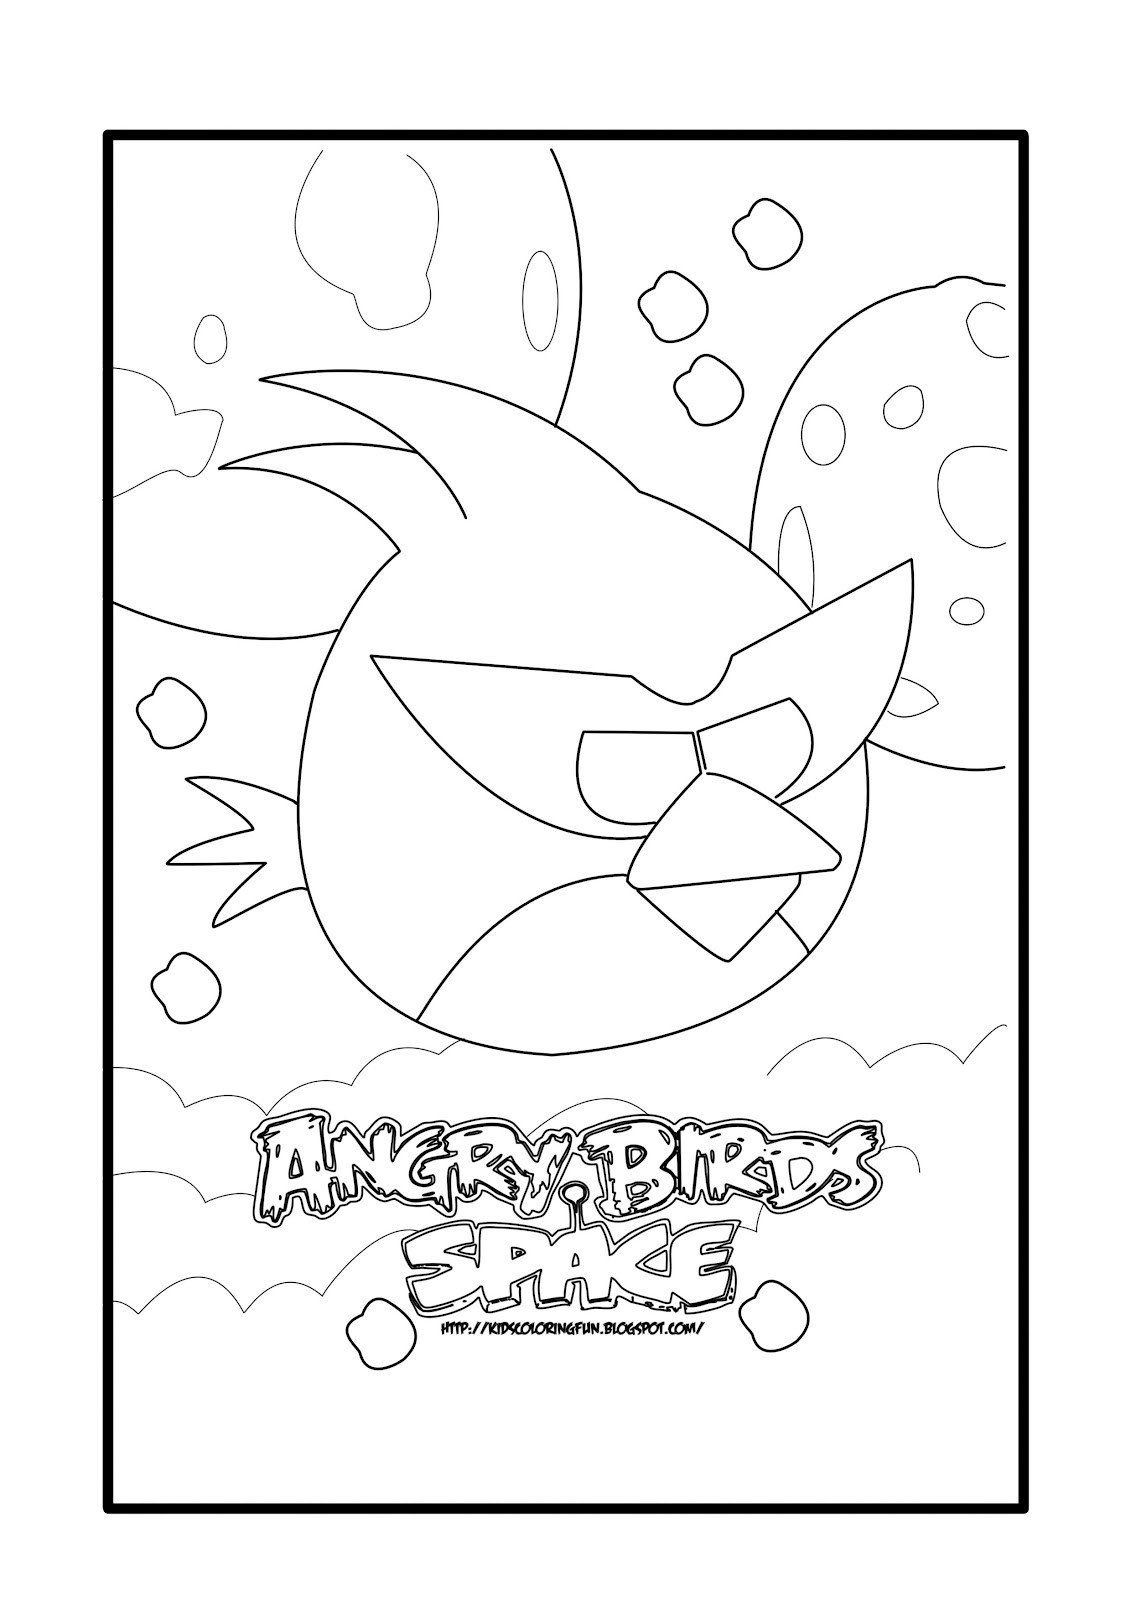 Angry Birds Go Coloring Page Angry Birds Free Printable Coloring Pages Colorpages Coloring Pages Bird Coloring Pages Space Coloring Pages